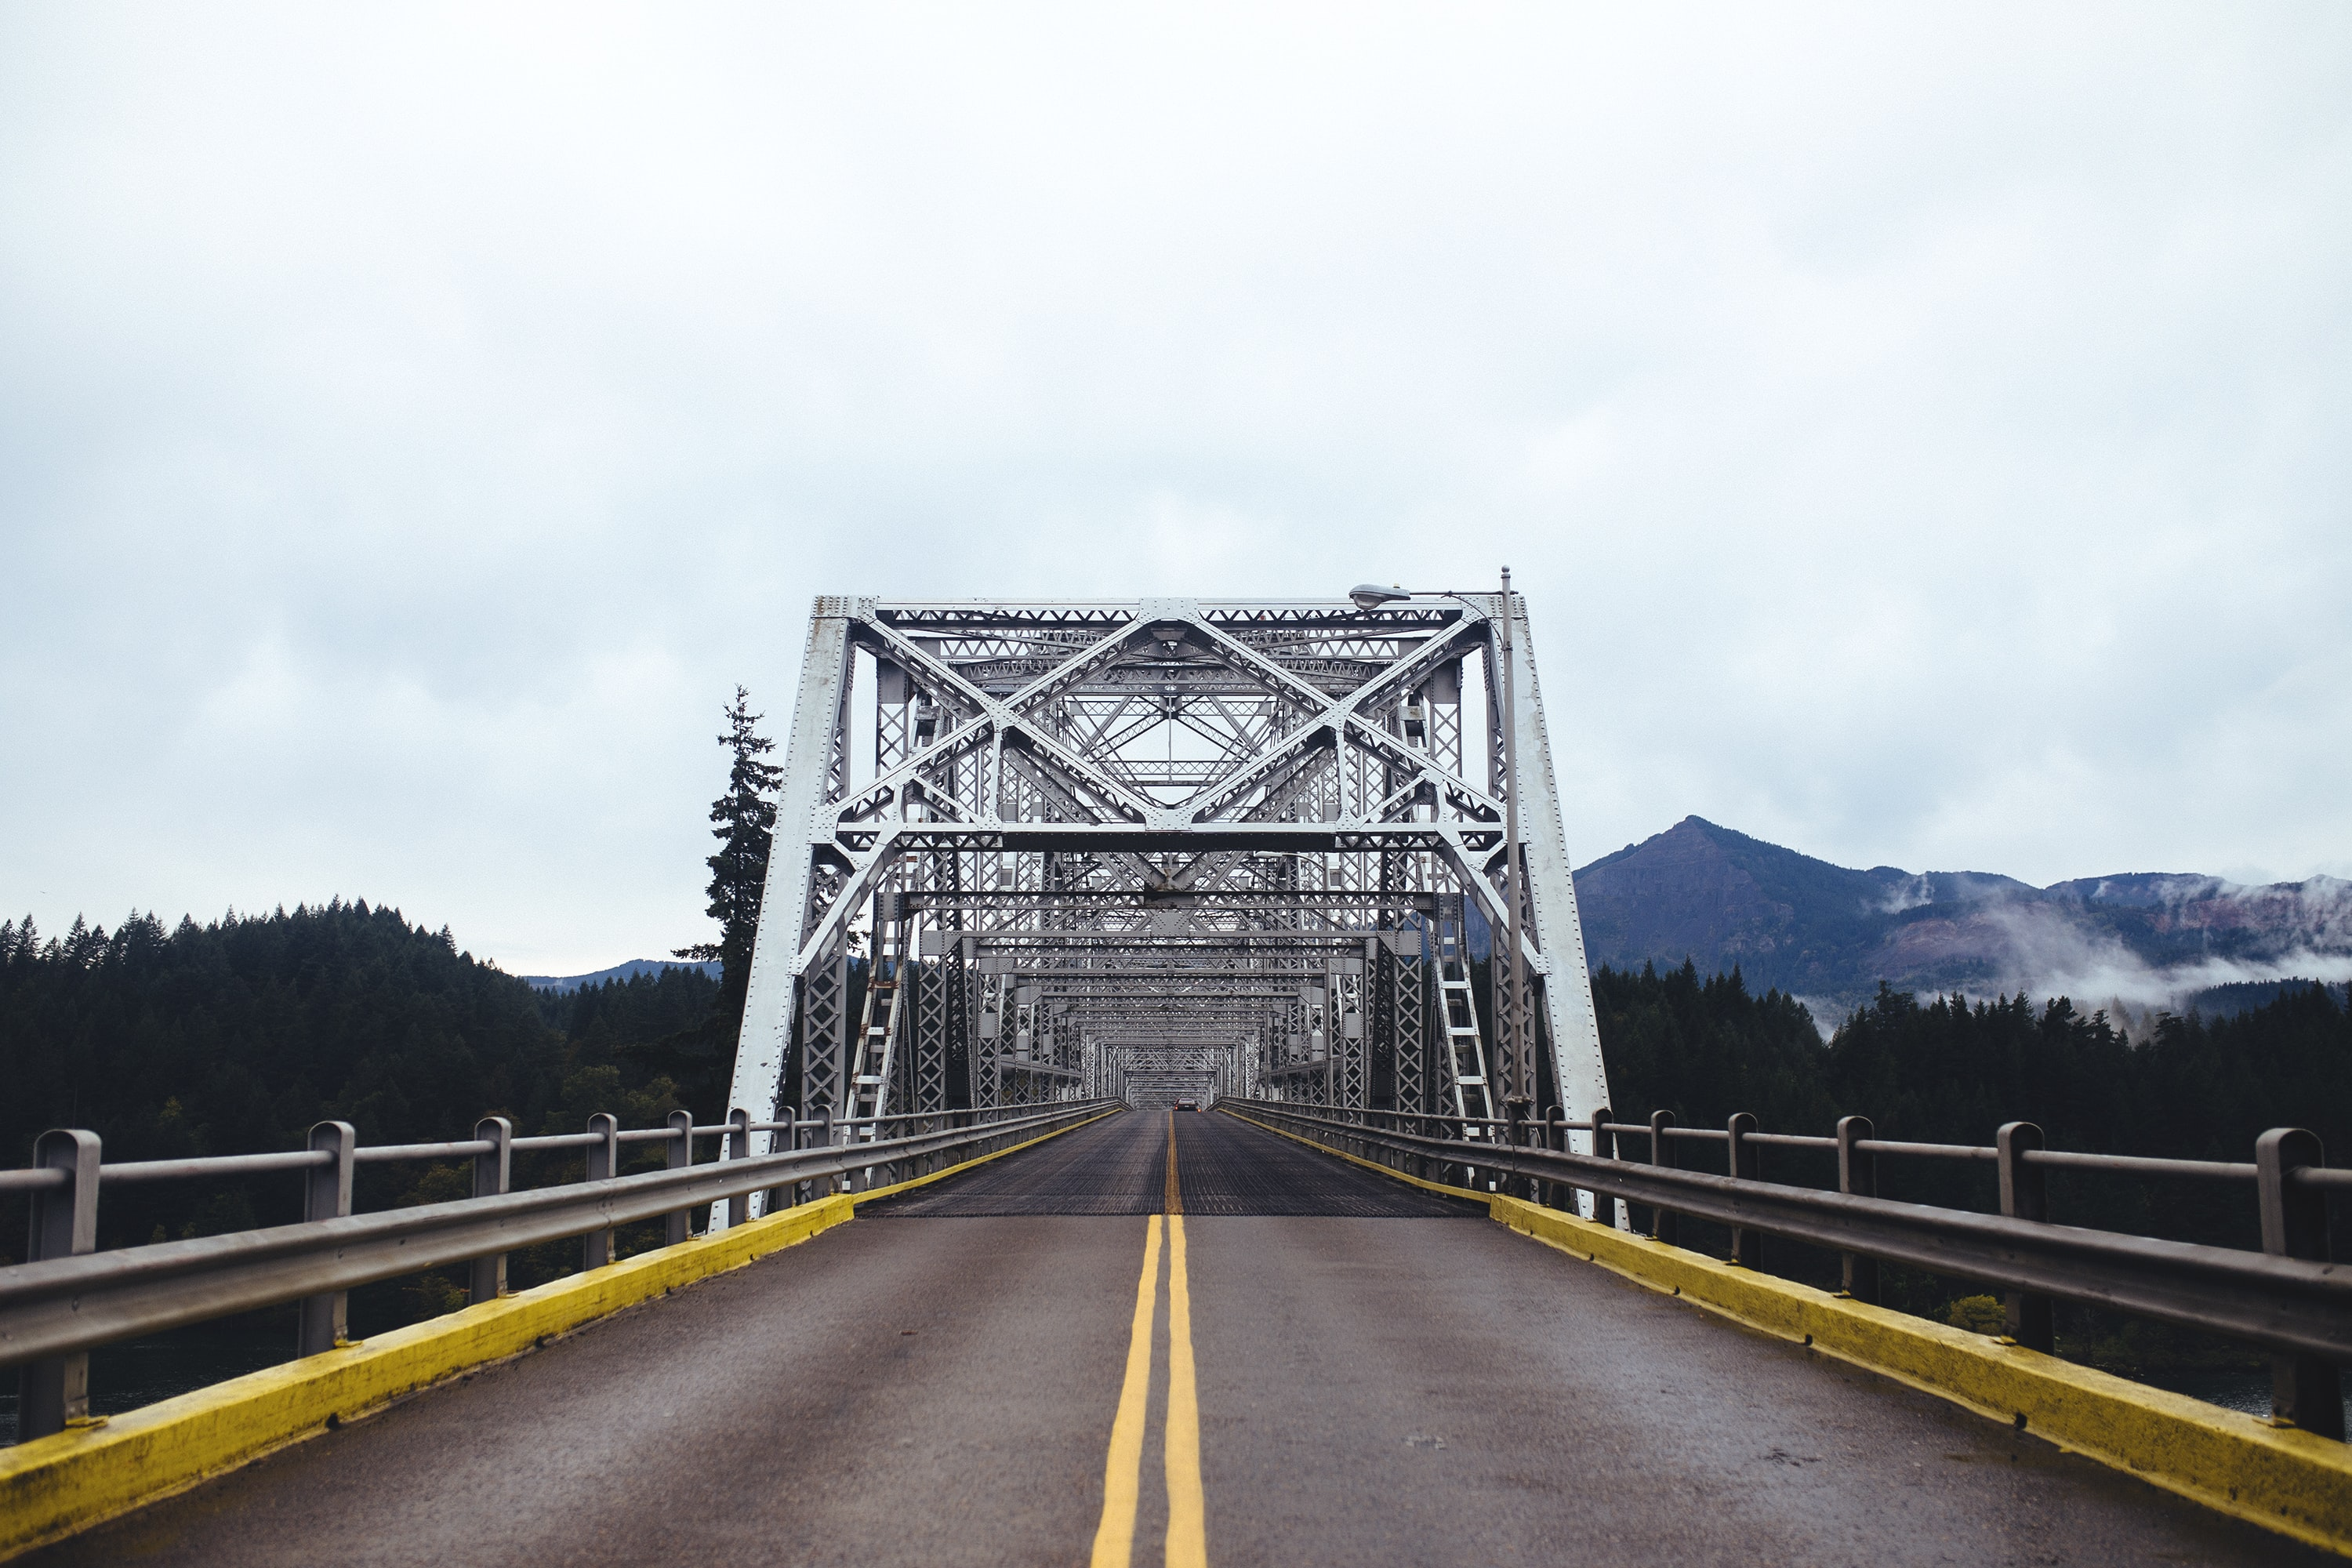 white and gray steel bridge with two yellow lanes